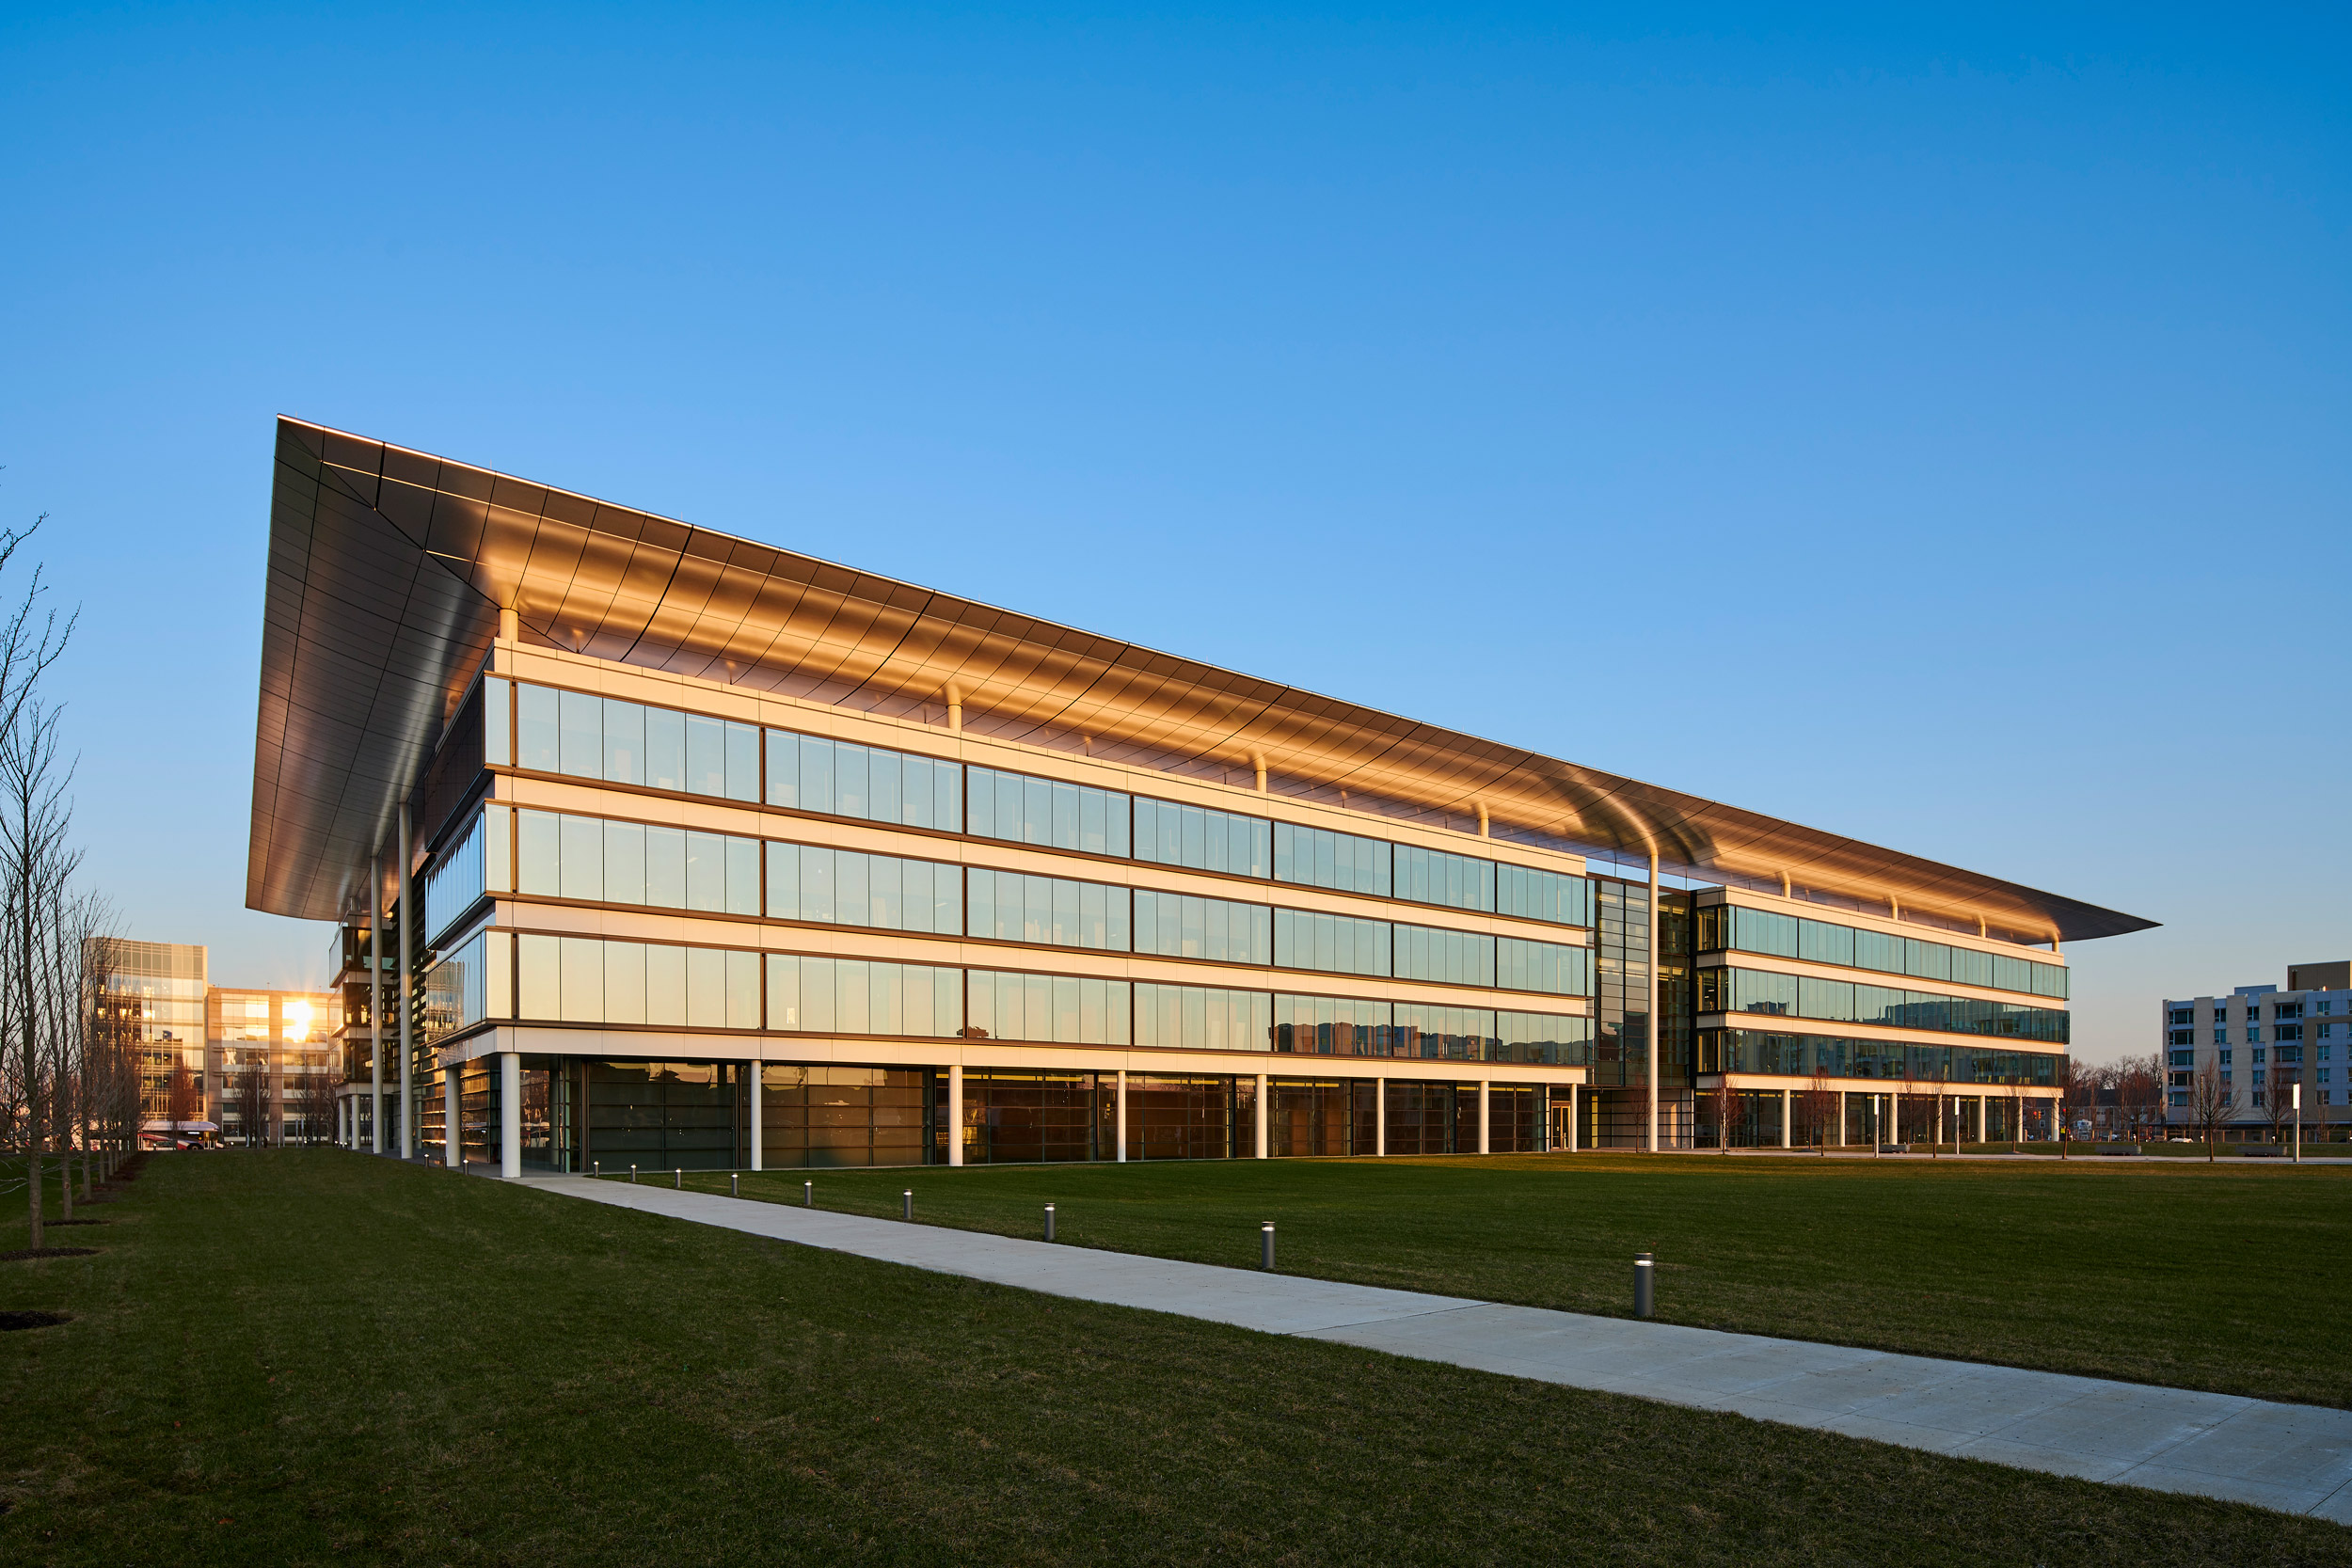 CWRU Health Education Campus at the Cleveland Clinic 5